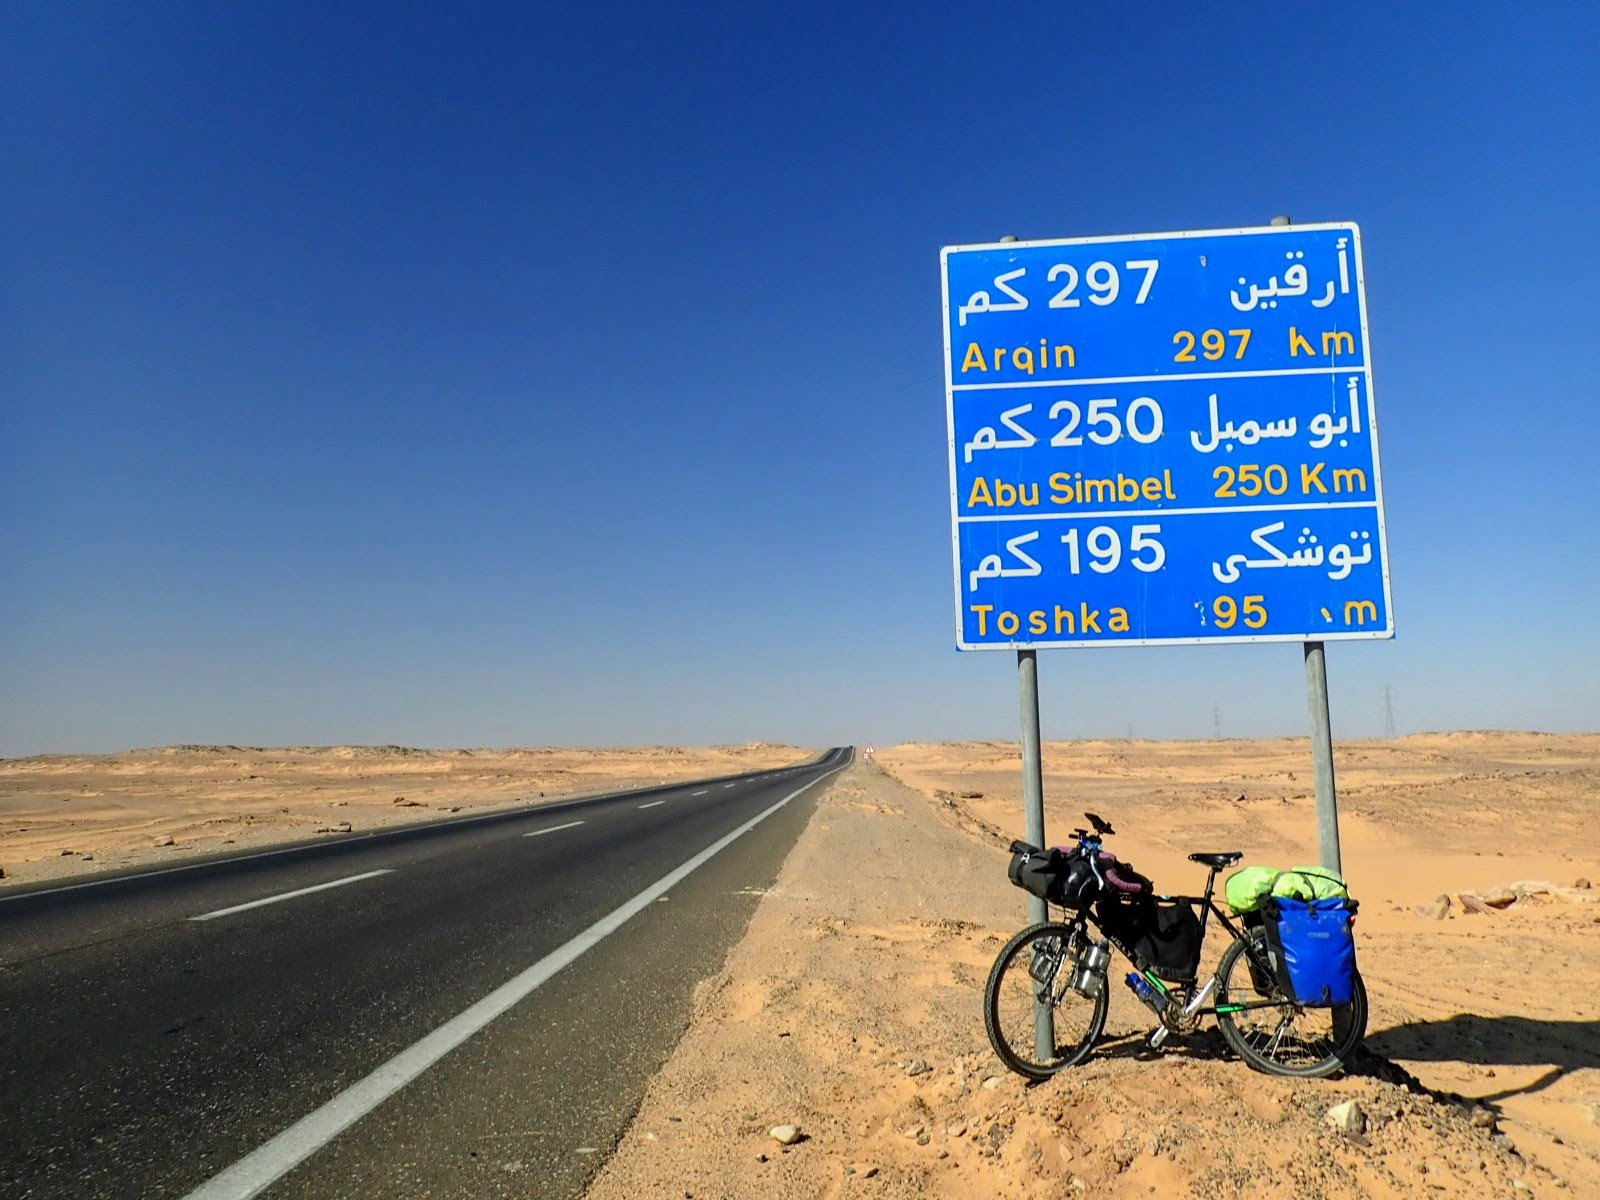 Bicycle and road sign in Egypt desert